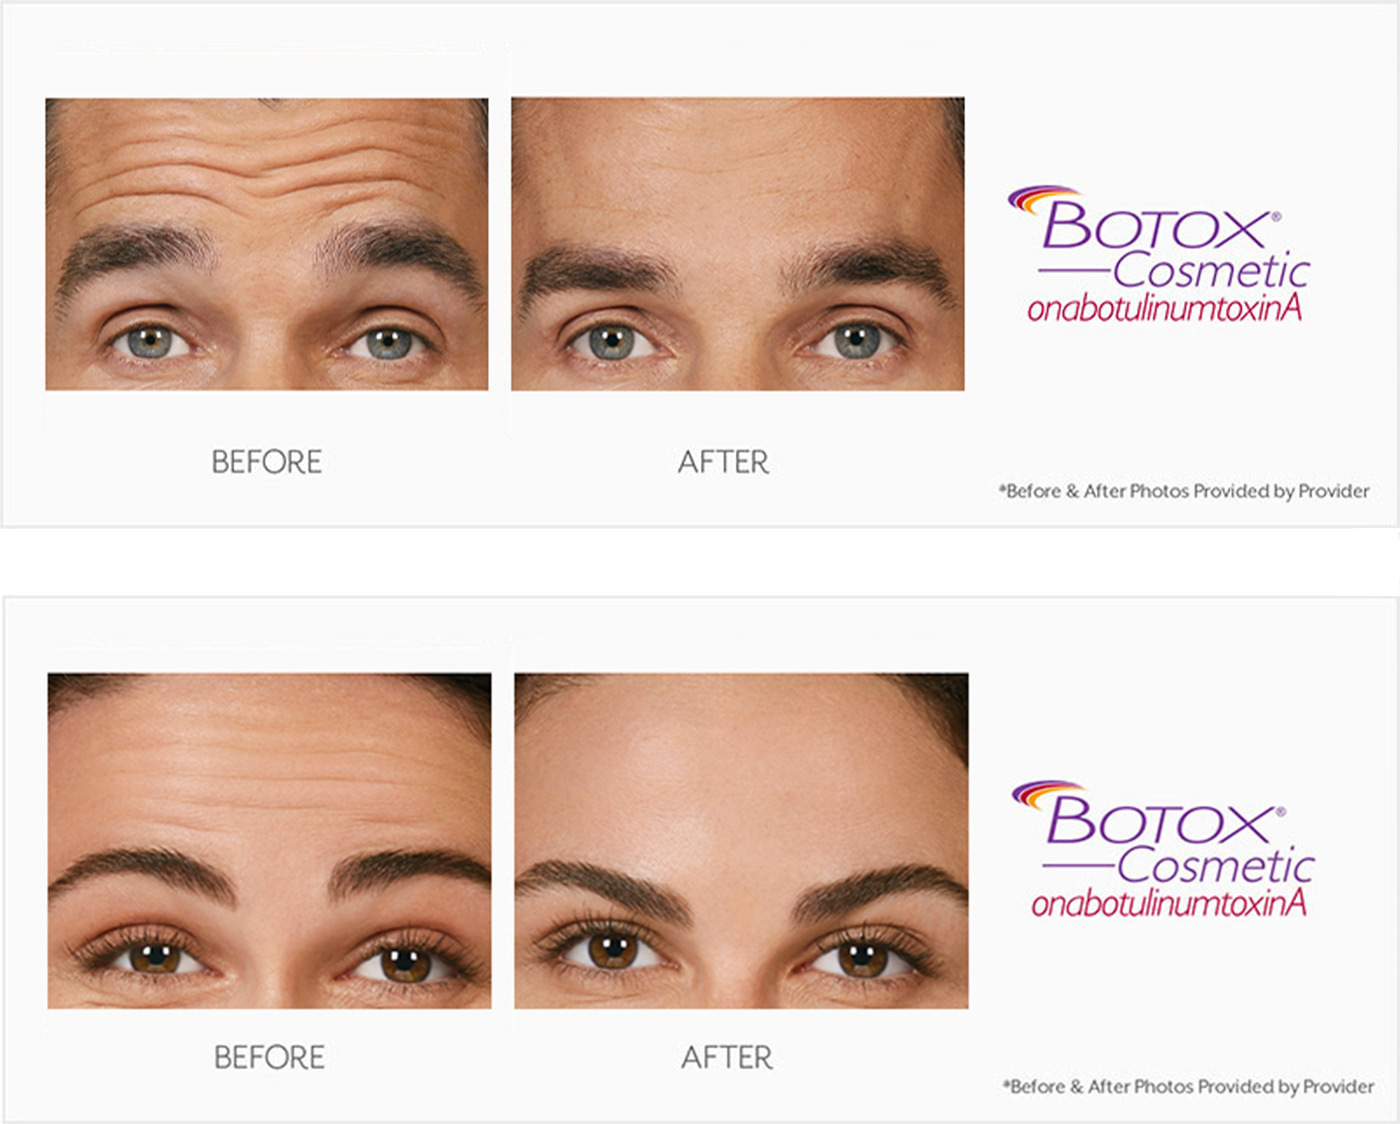 Botox before and after photos on a male and female